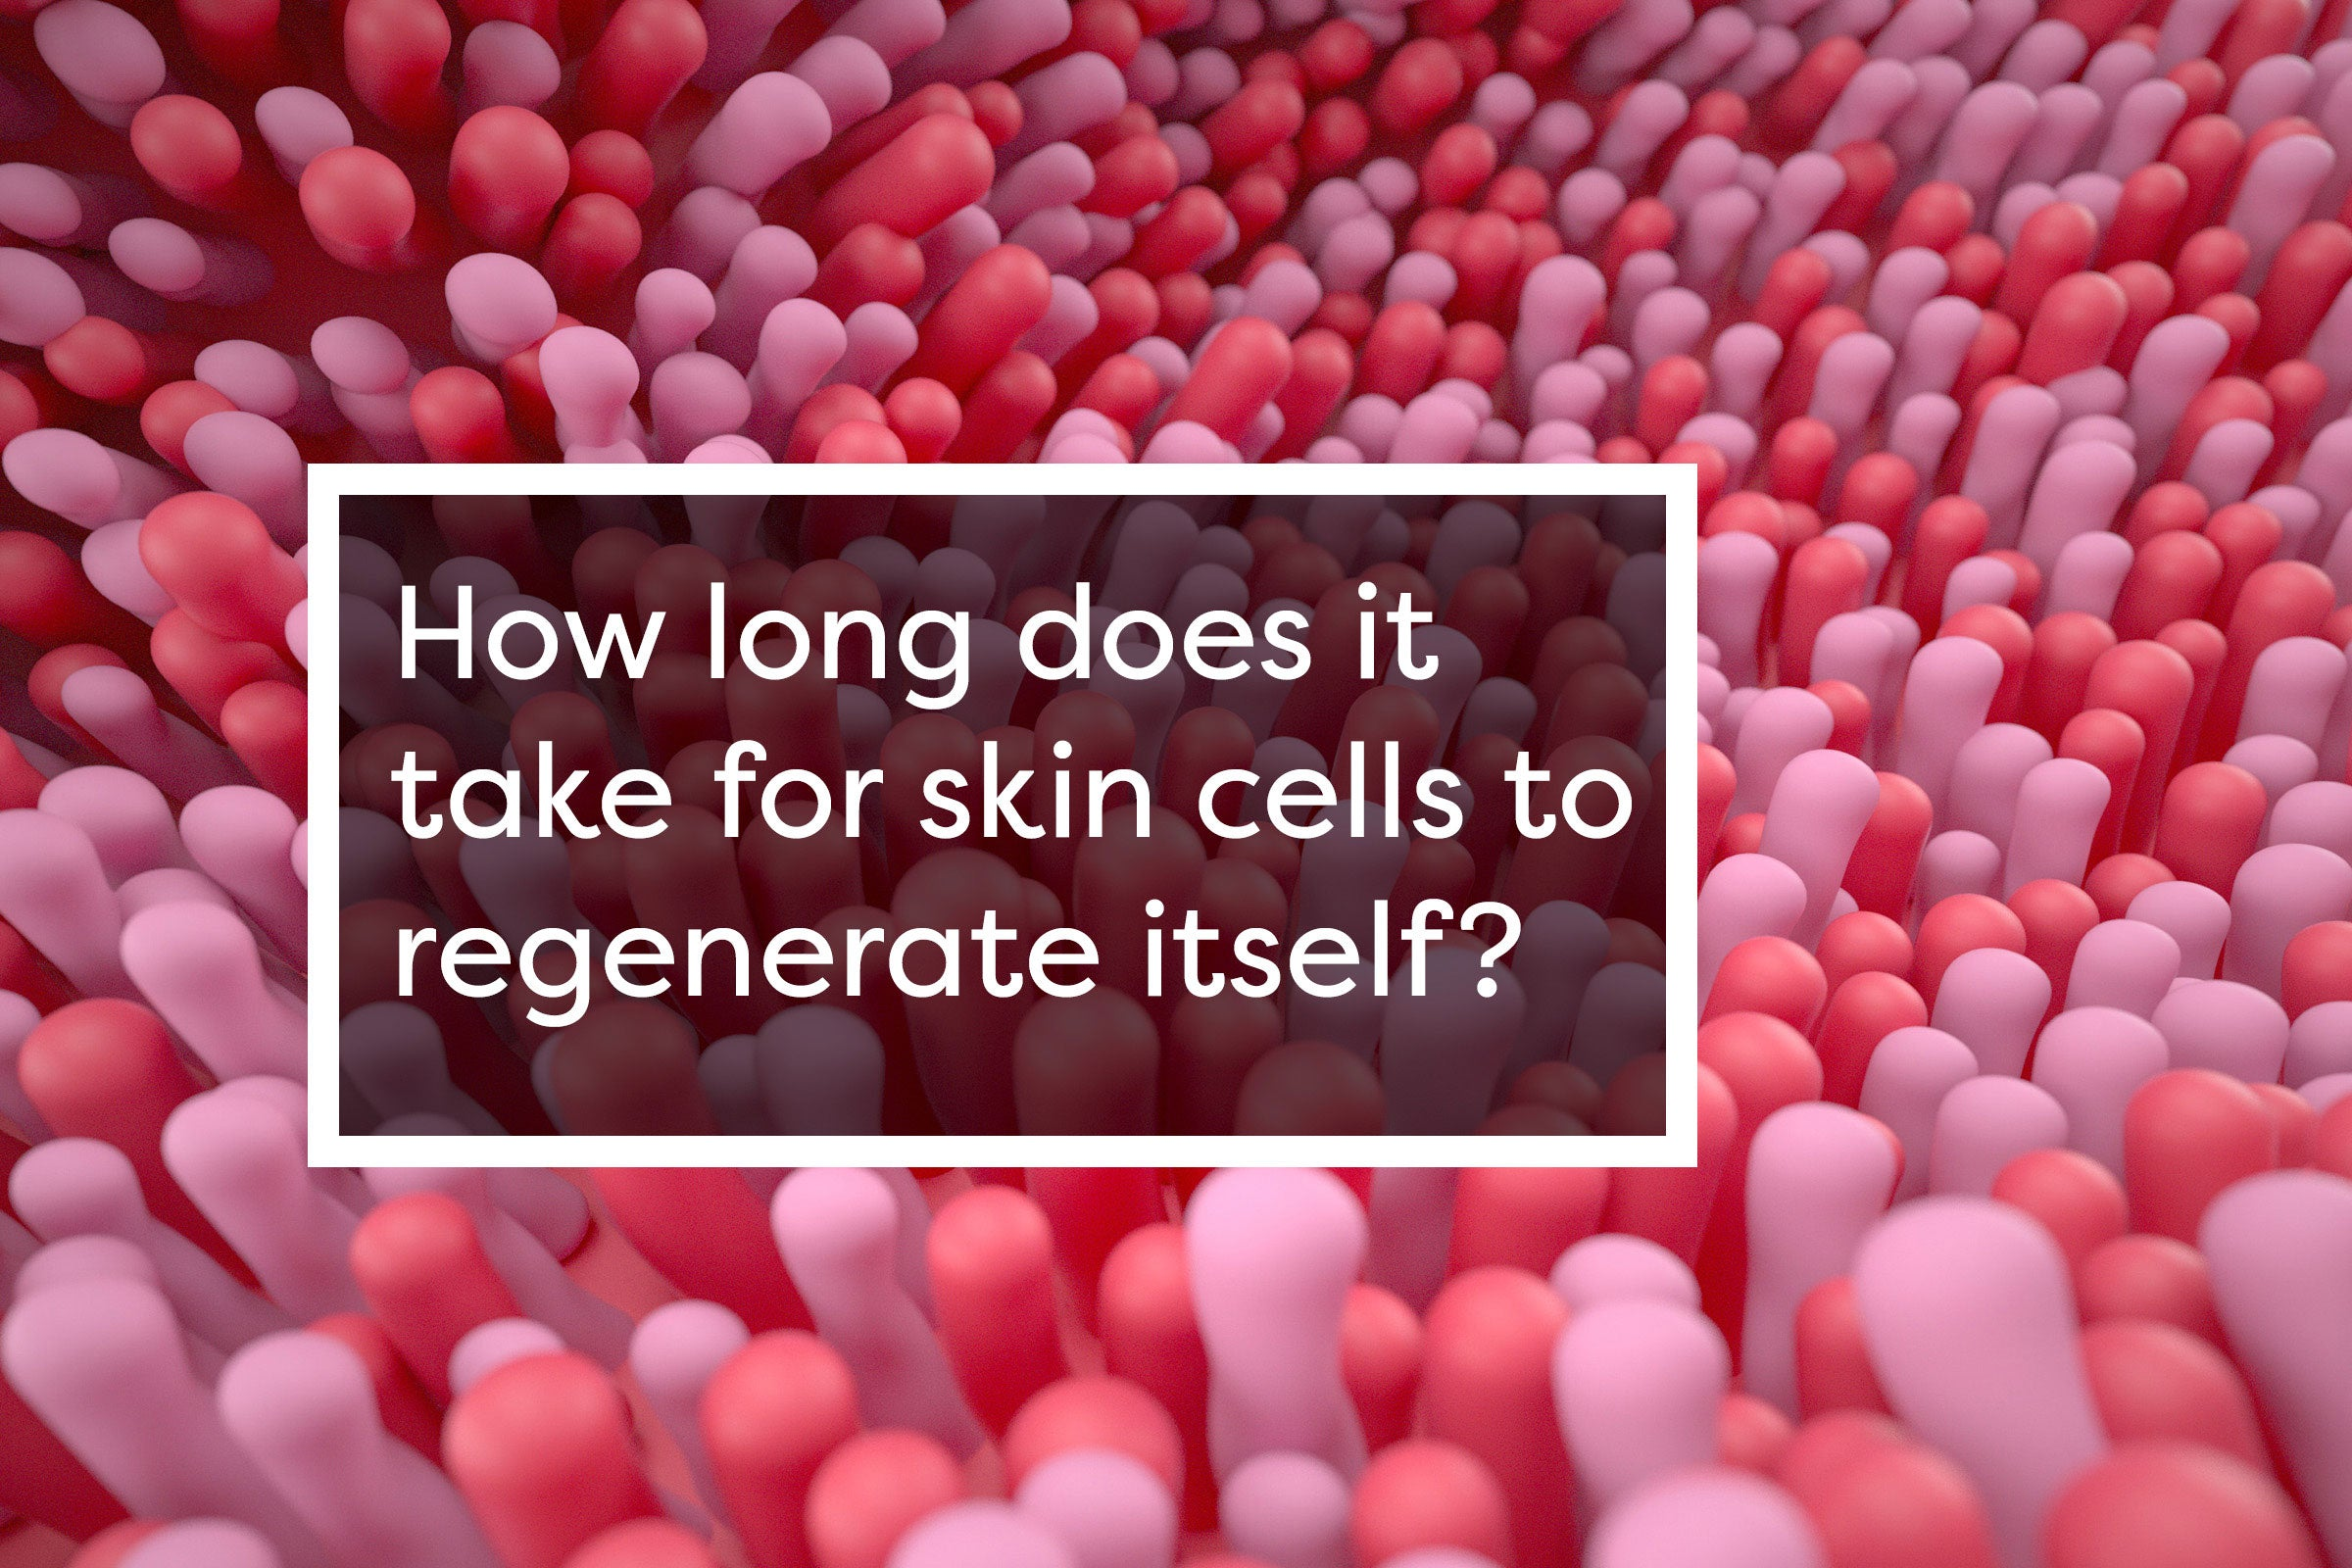 HOW LONG DOES IT TAKE FOR SKIN CELLS TO REGENERATE ITSELF?